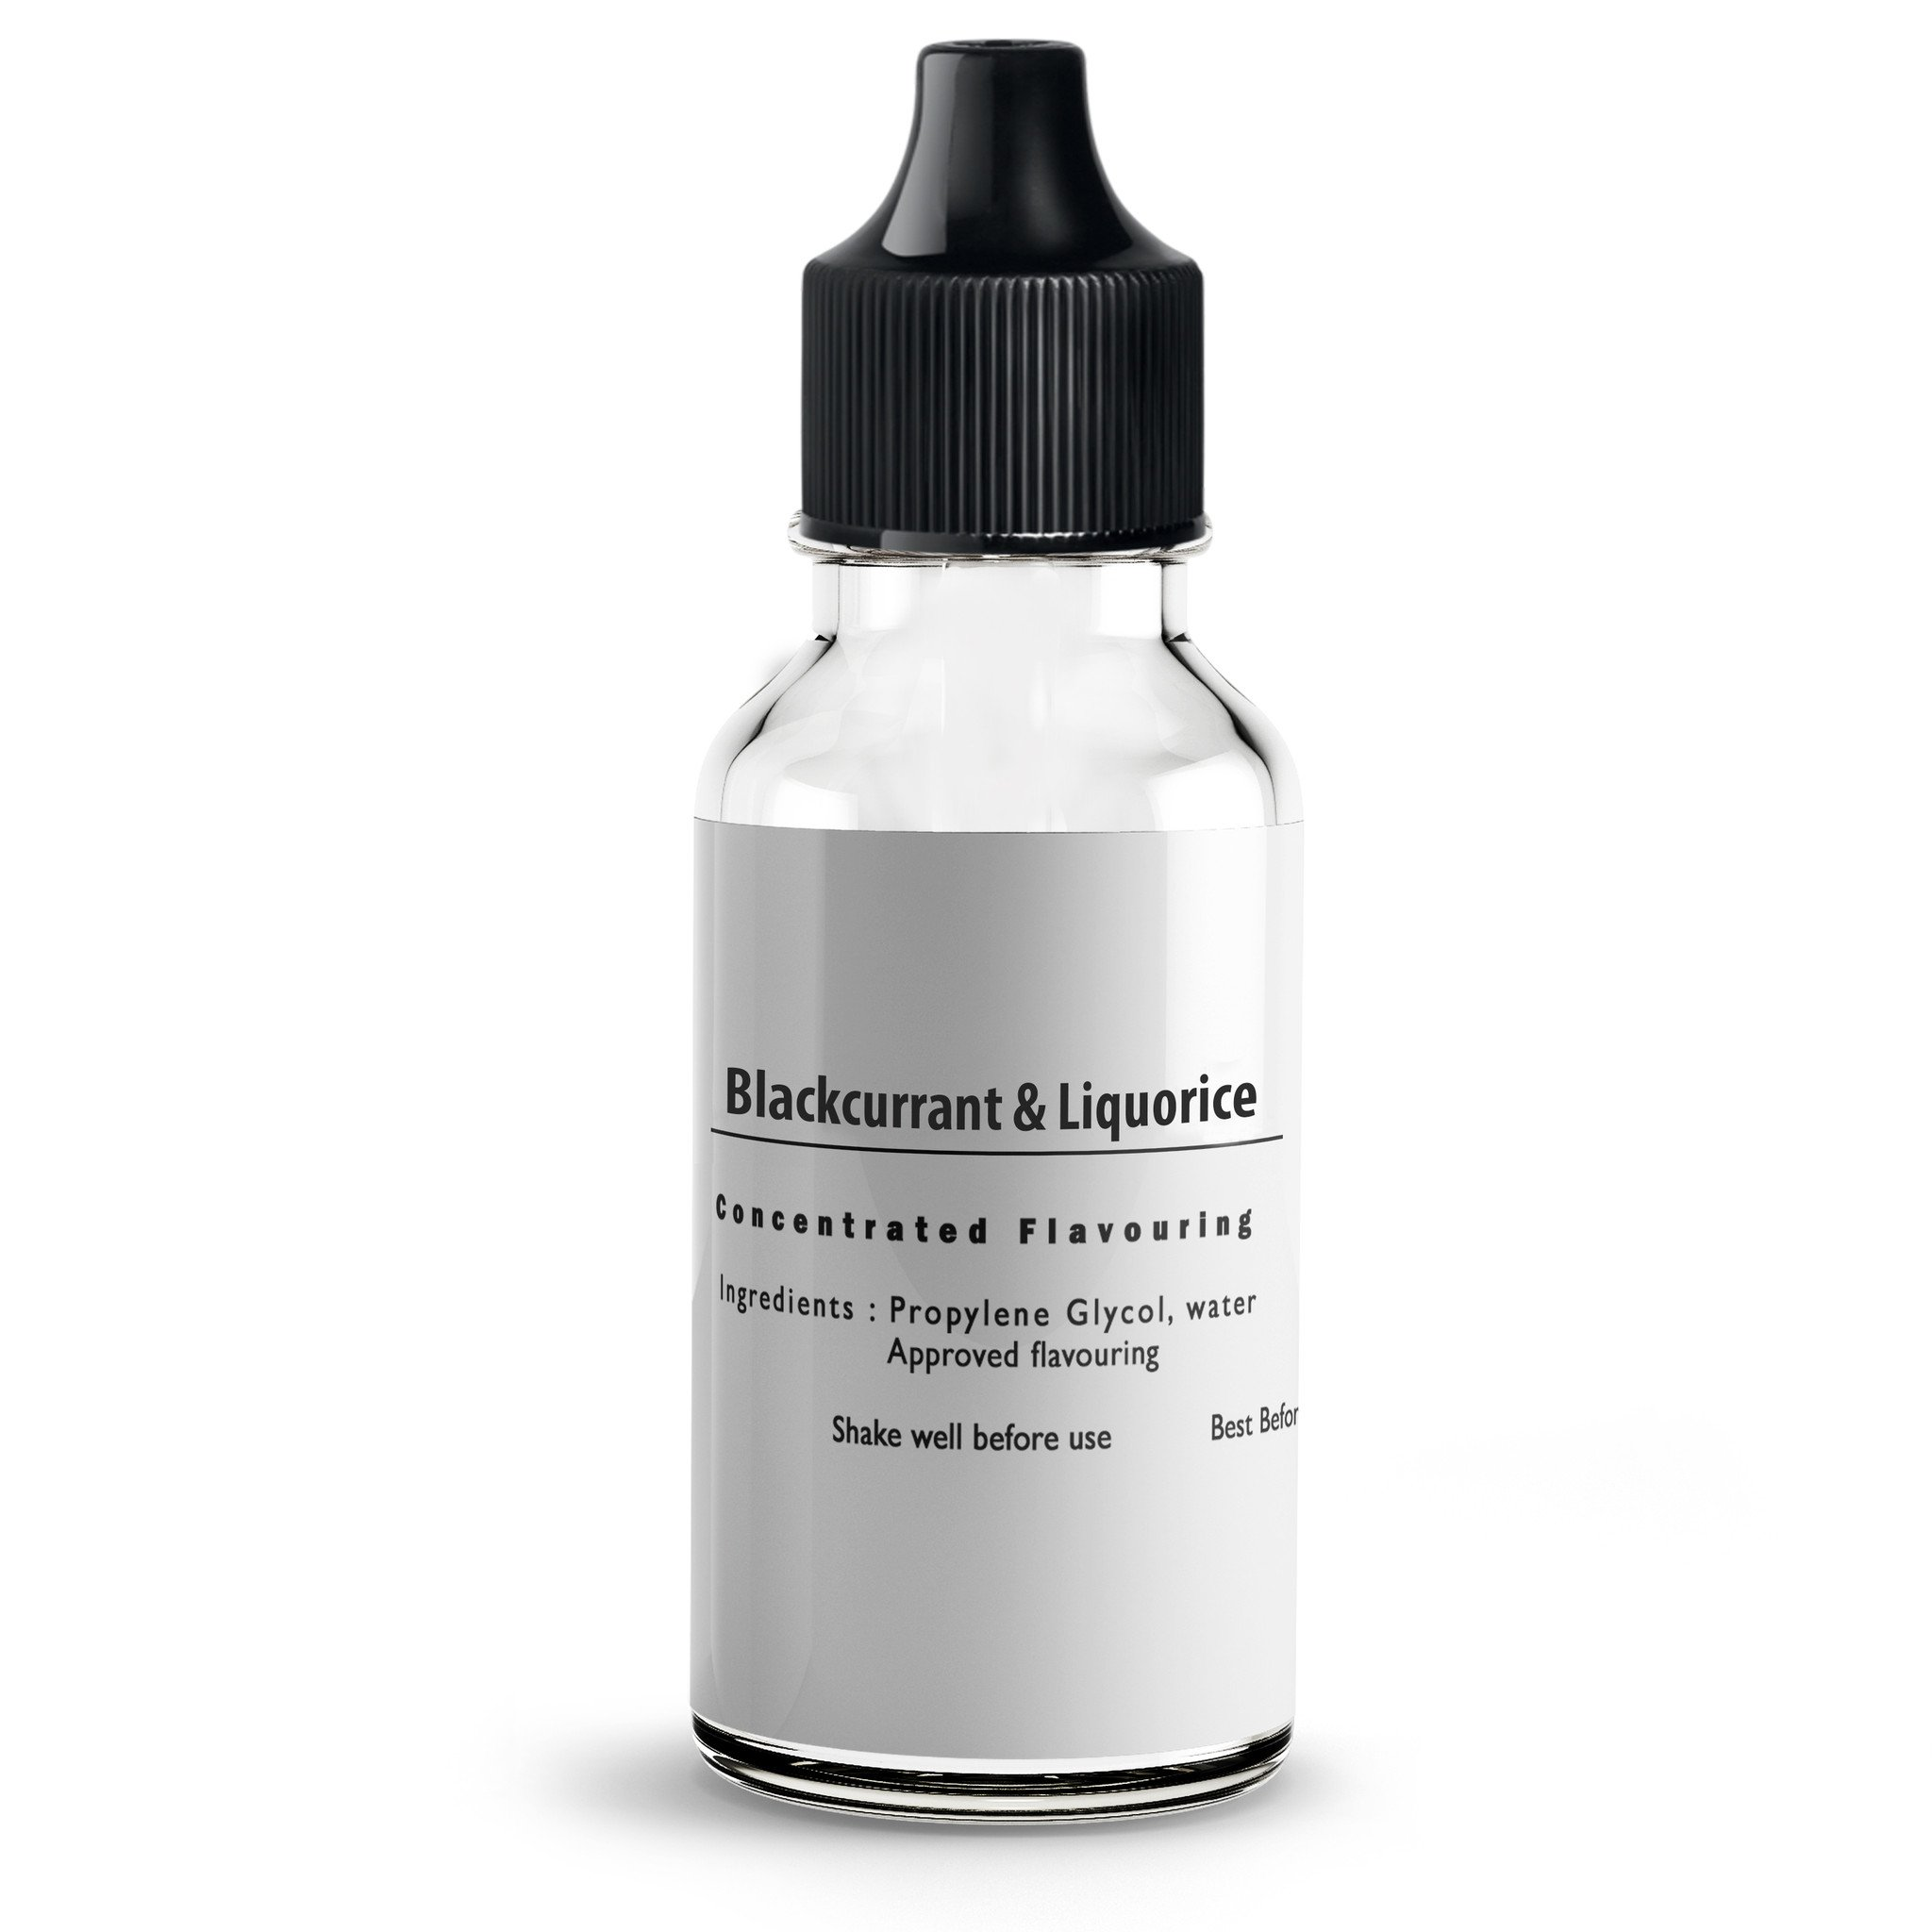 Blackcurrant & Liquorice Flavour Concentrate For E Liquids